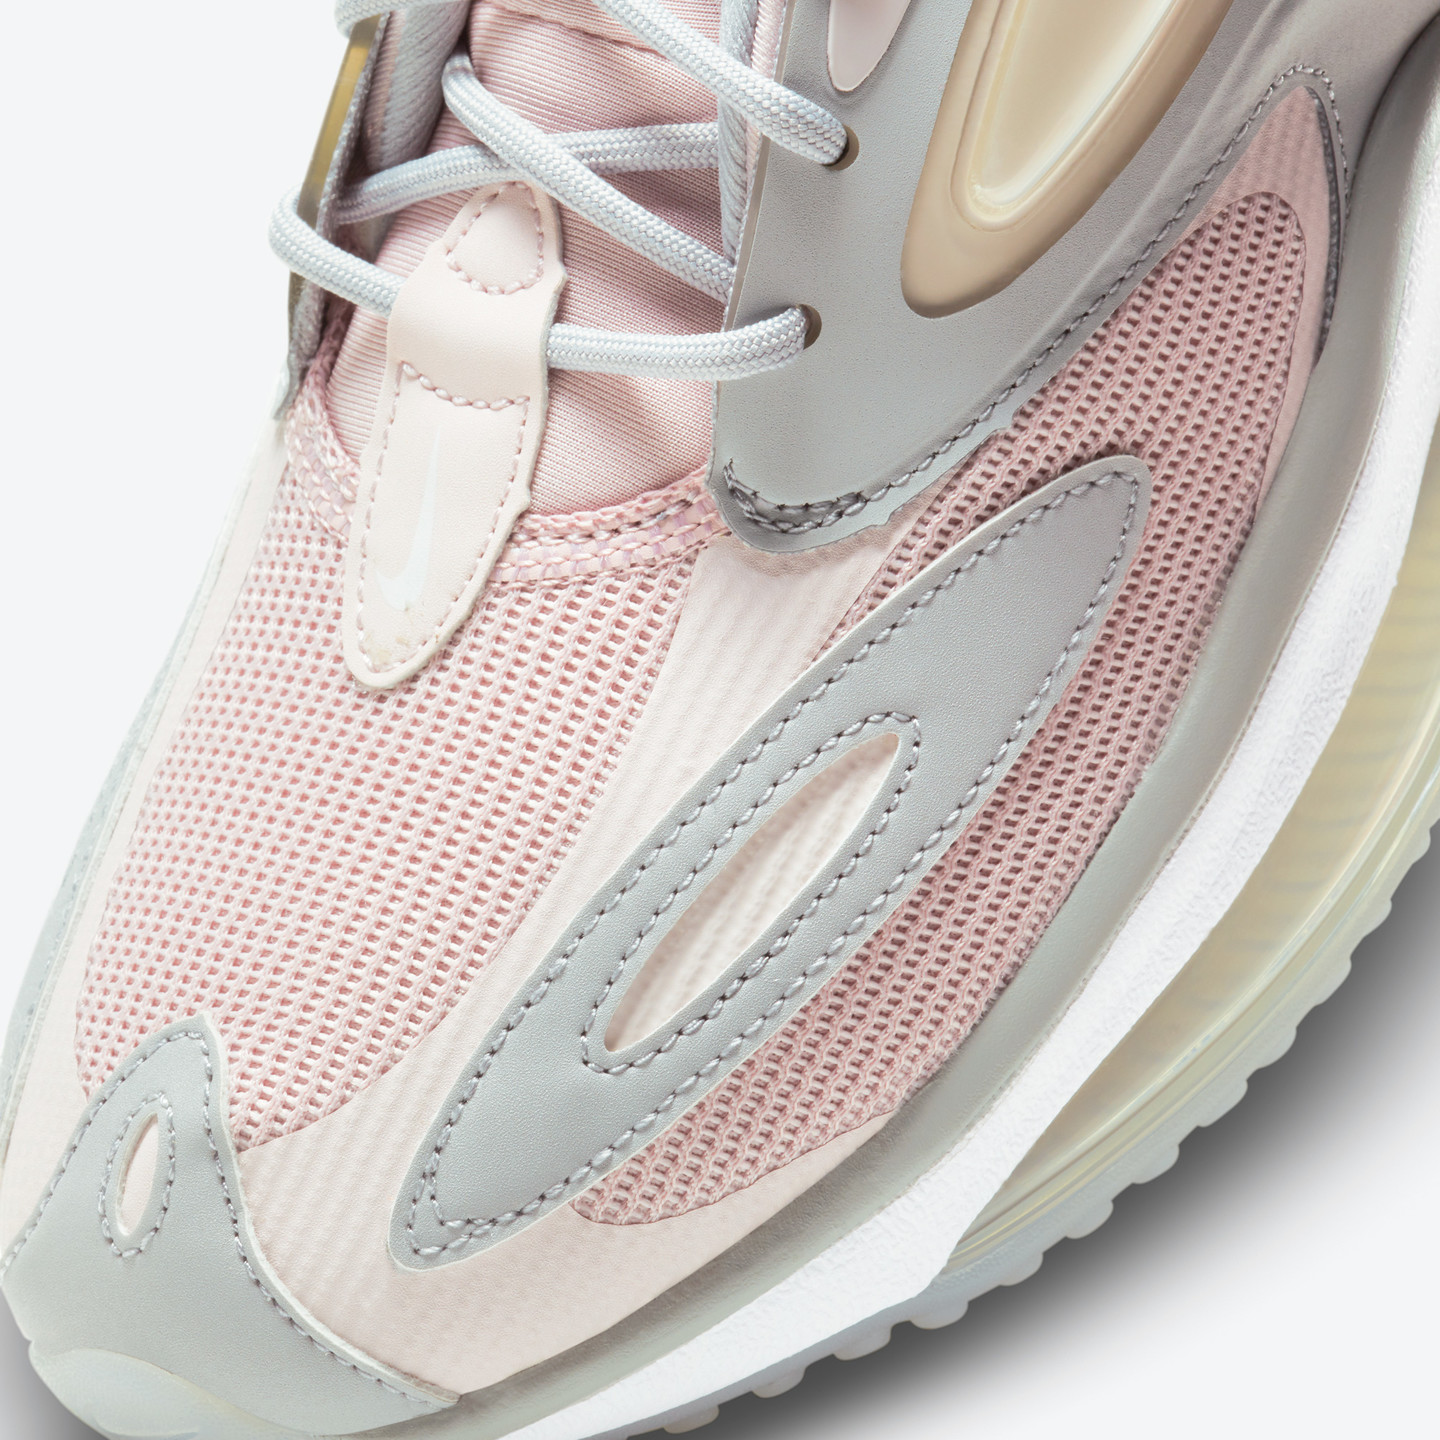 Nike Wmns Air Max Zephyr Champagne / White / Barely Rose CV8817-600